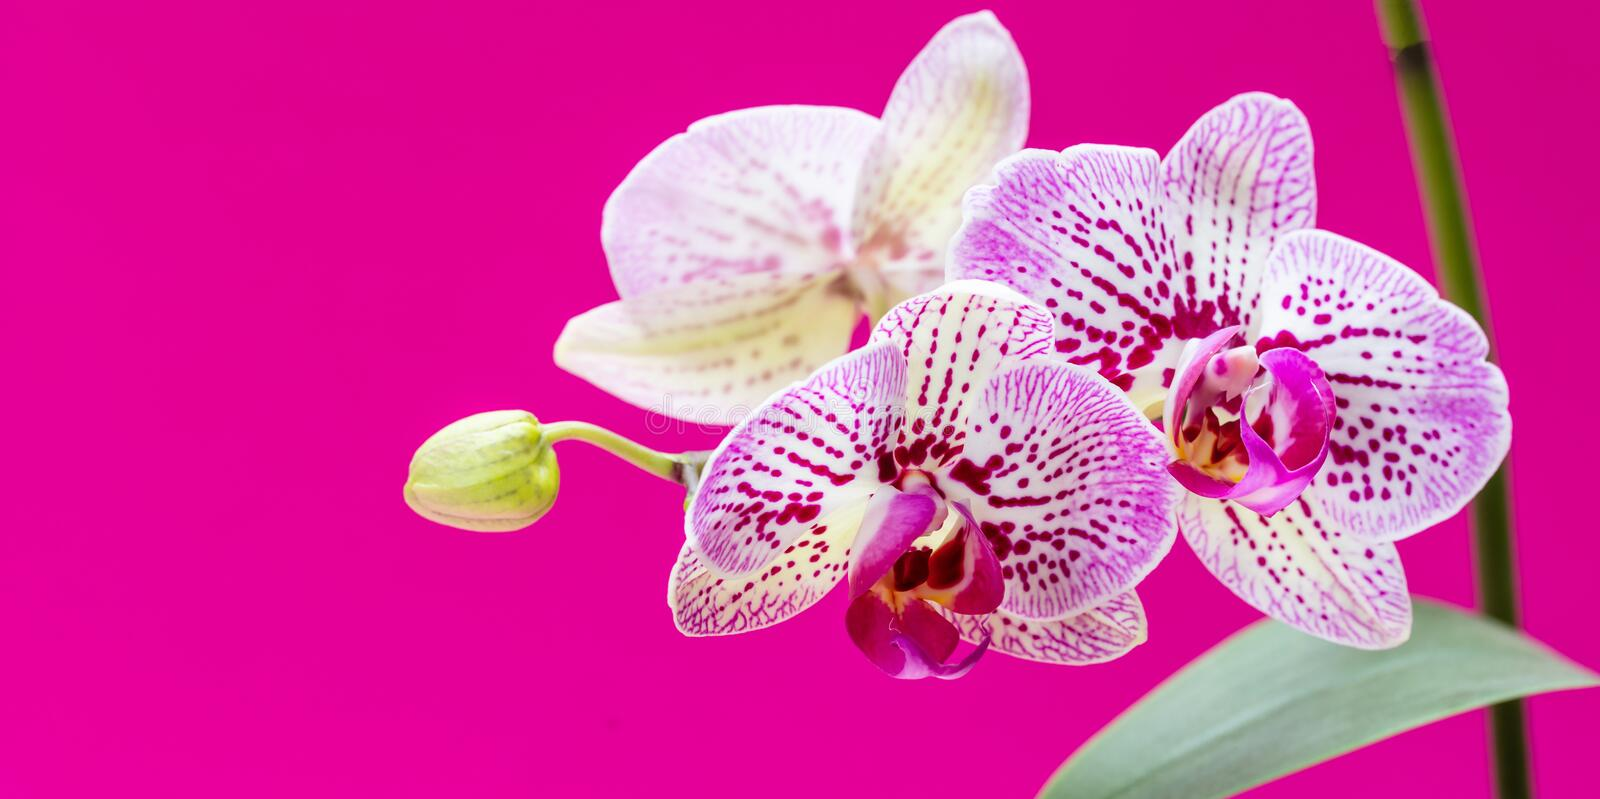 Orchids flowers purple white color closeup on bright pink royalty free stock photography